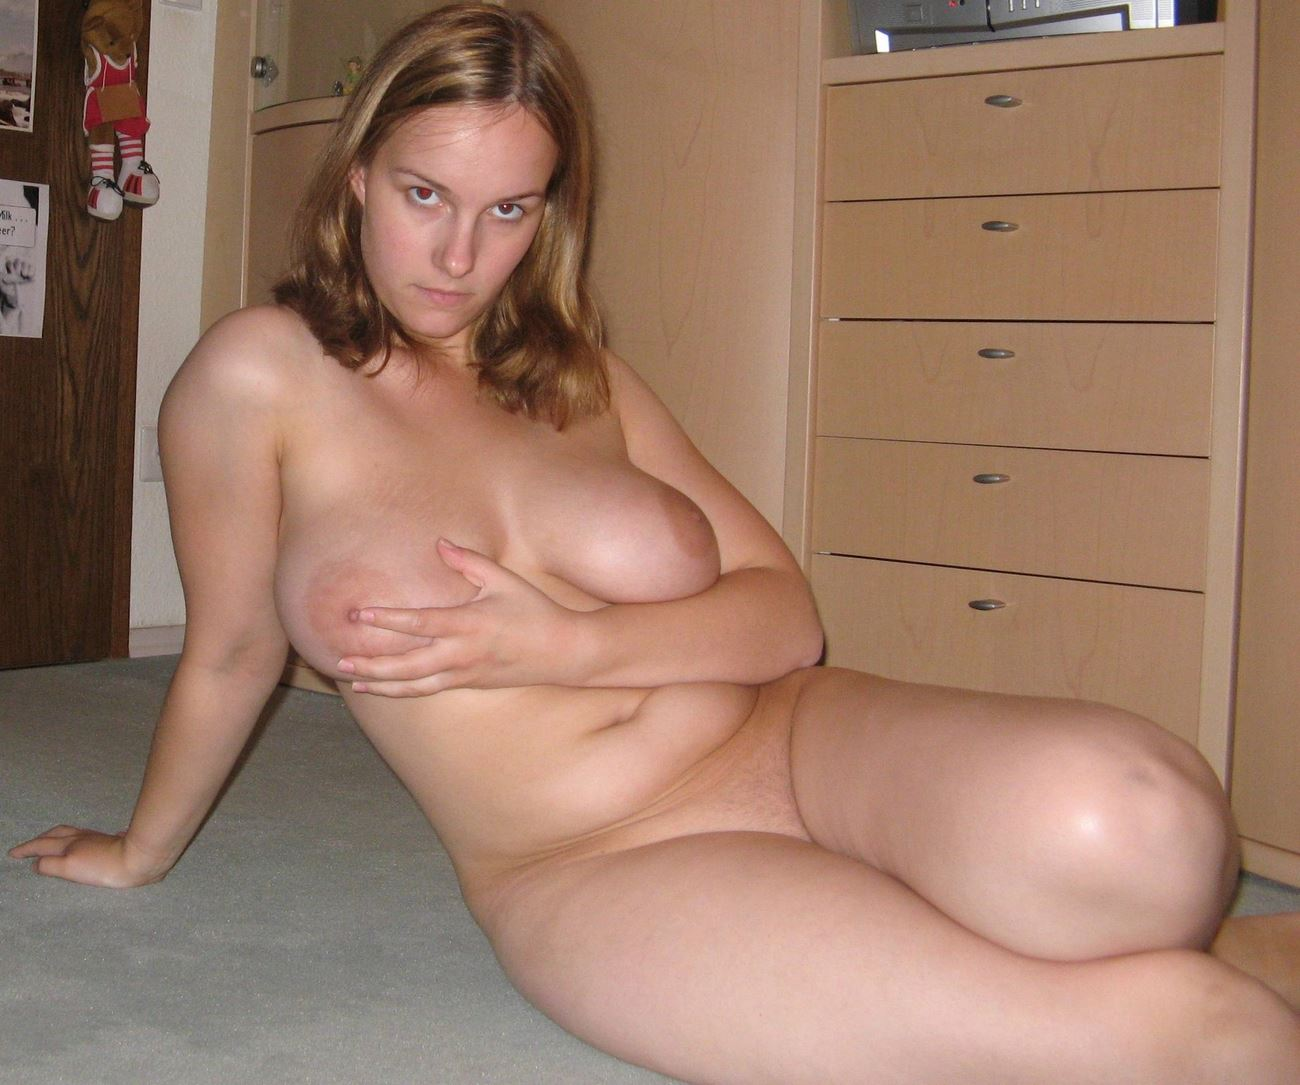 Free amateur milf galleries